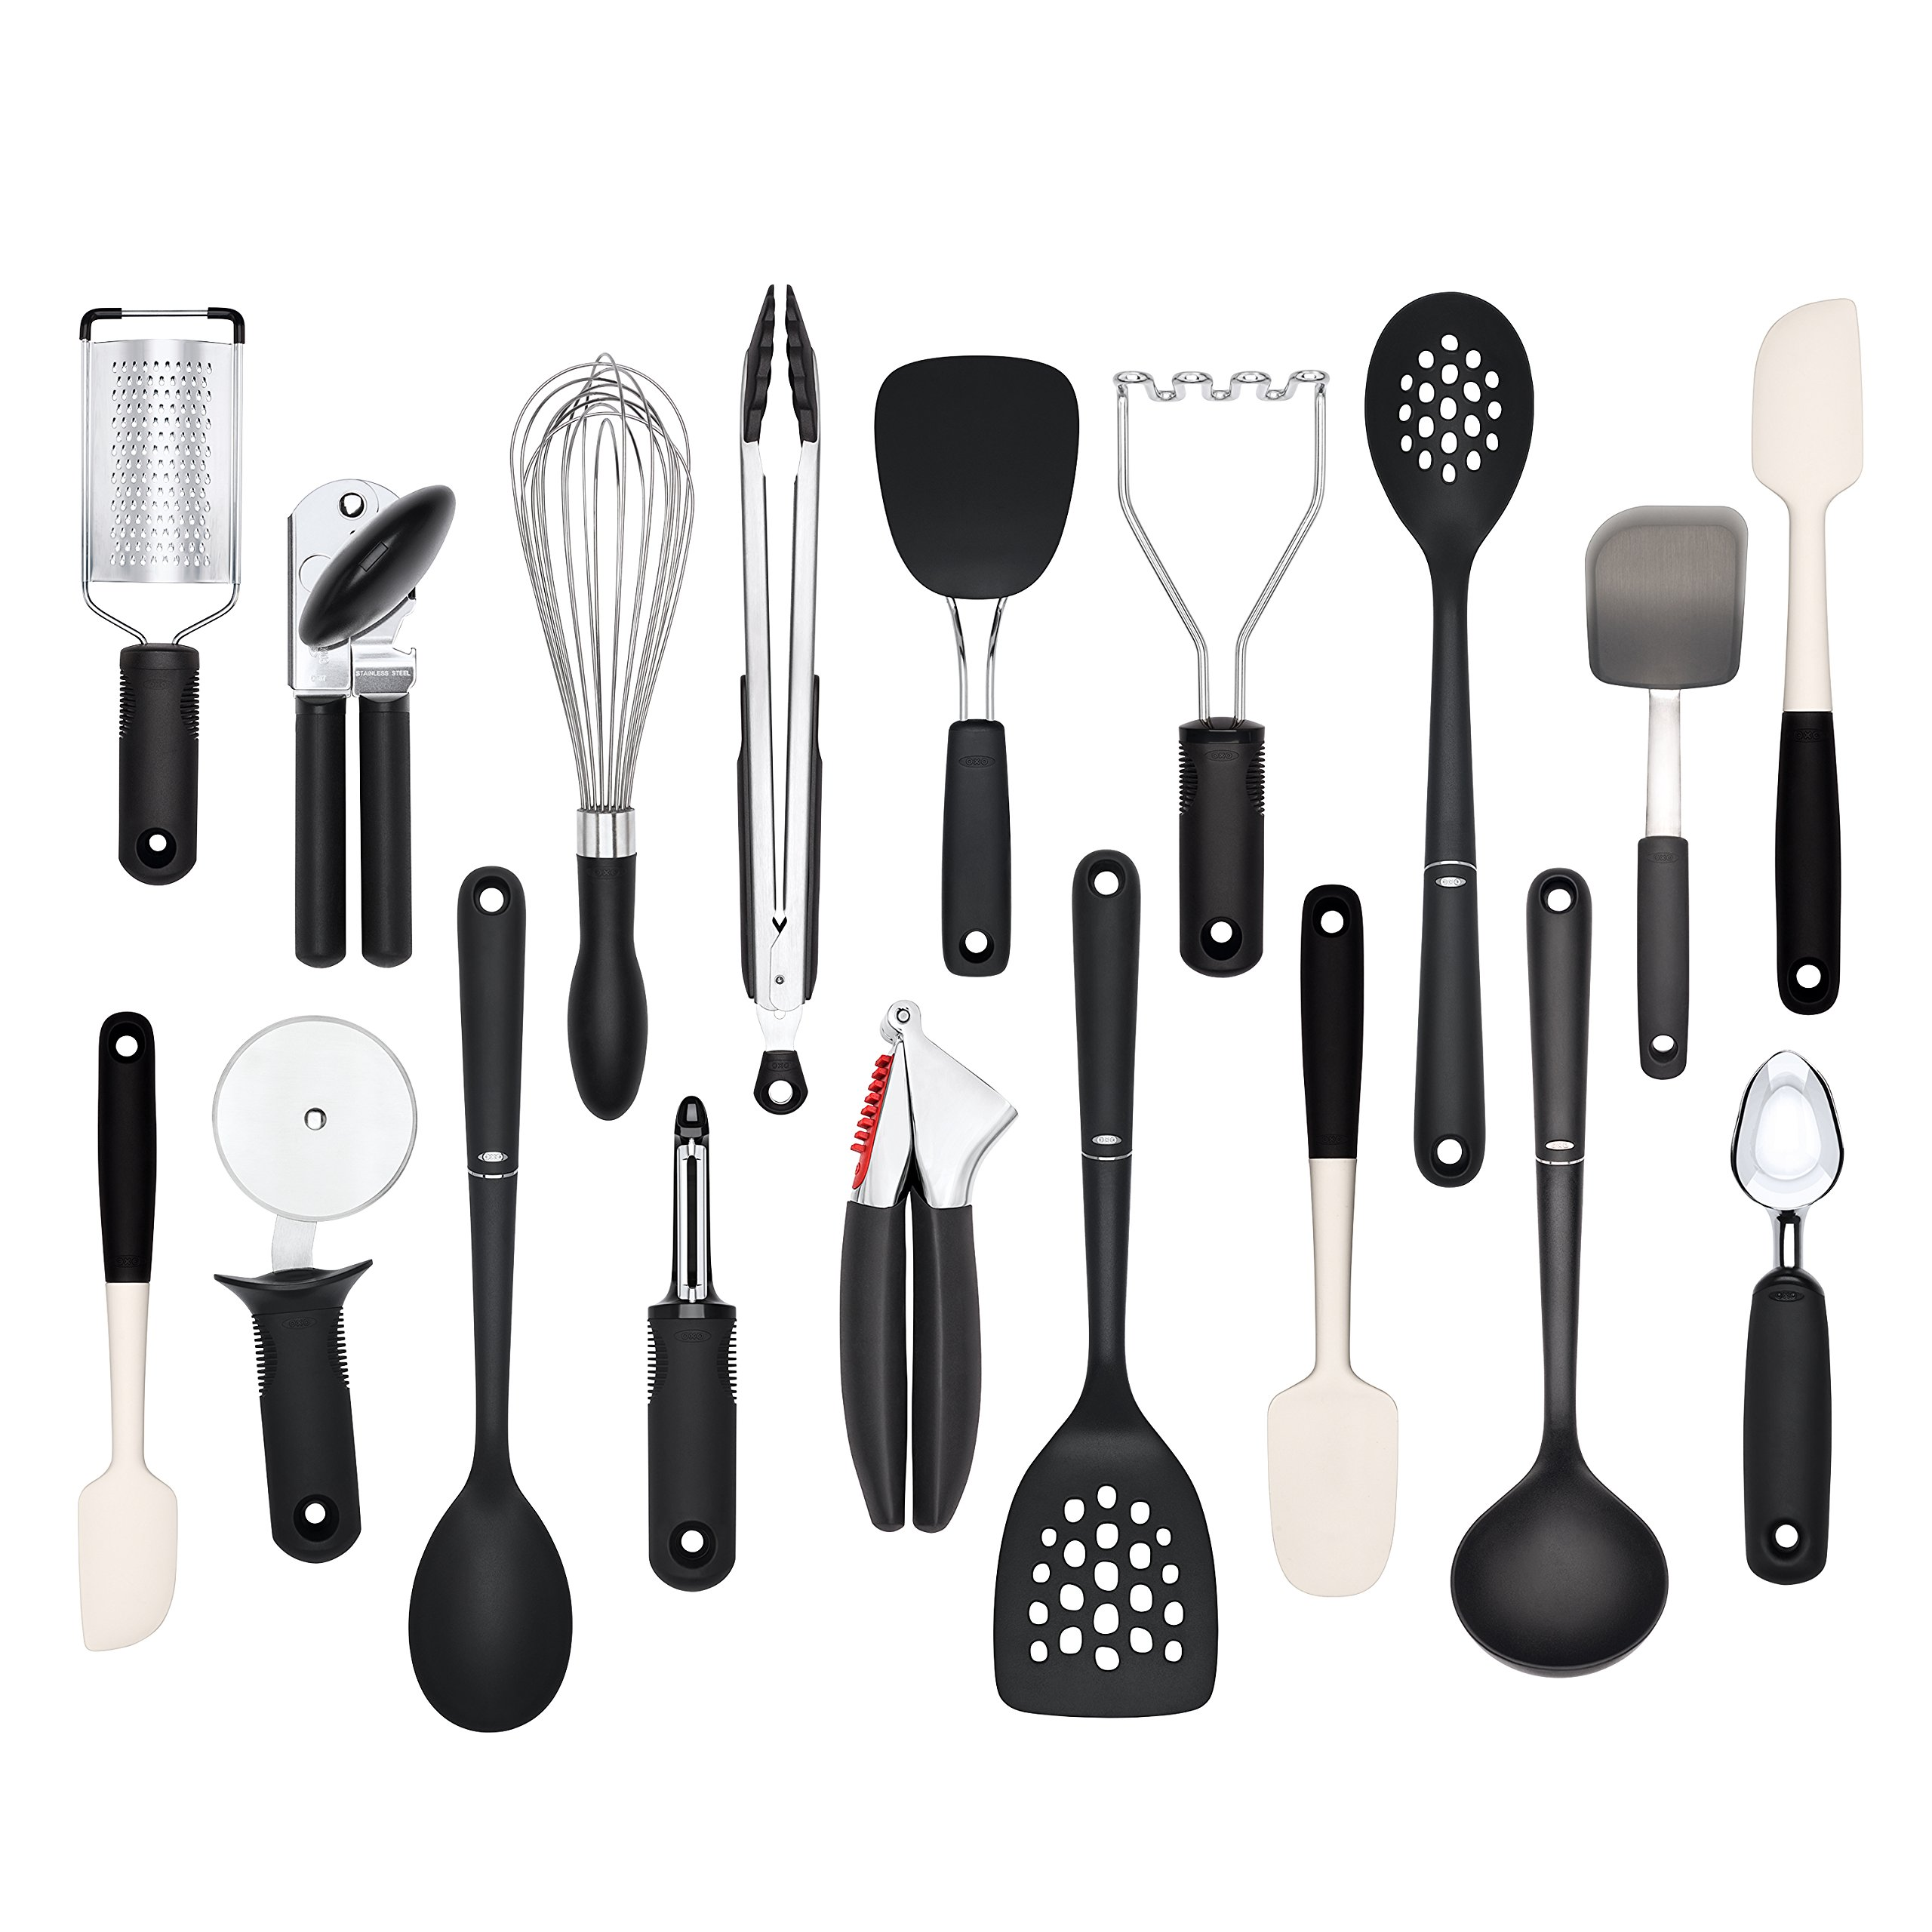 OXO Good Grips 18-Piece Everyday Kitchen Tool Set by OXO